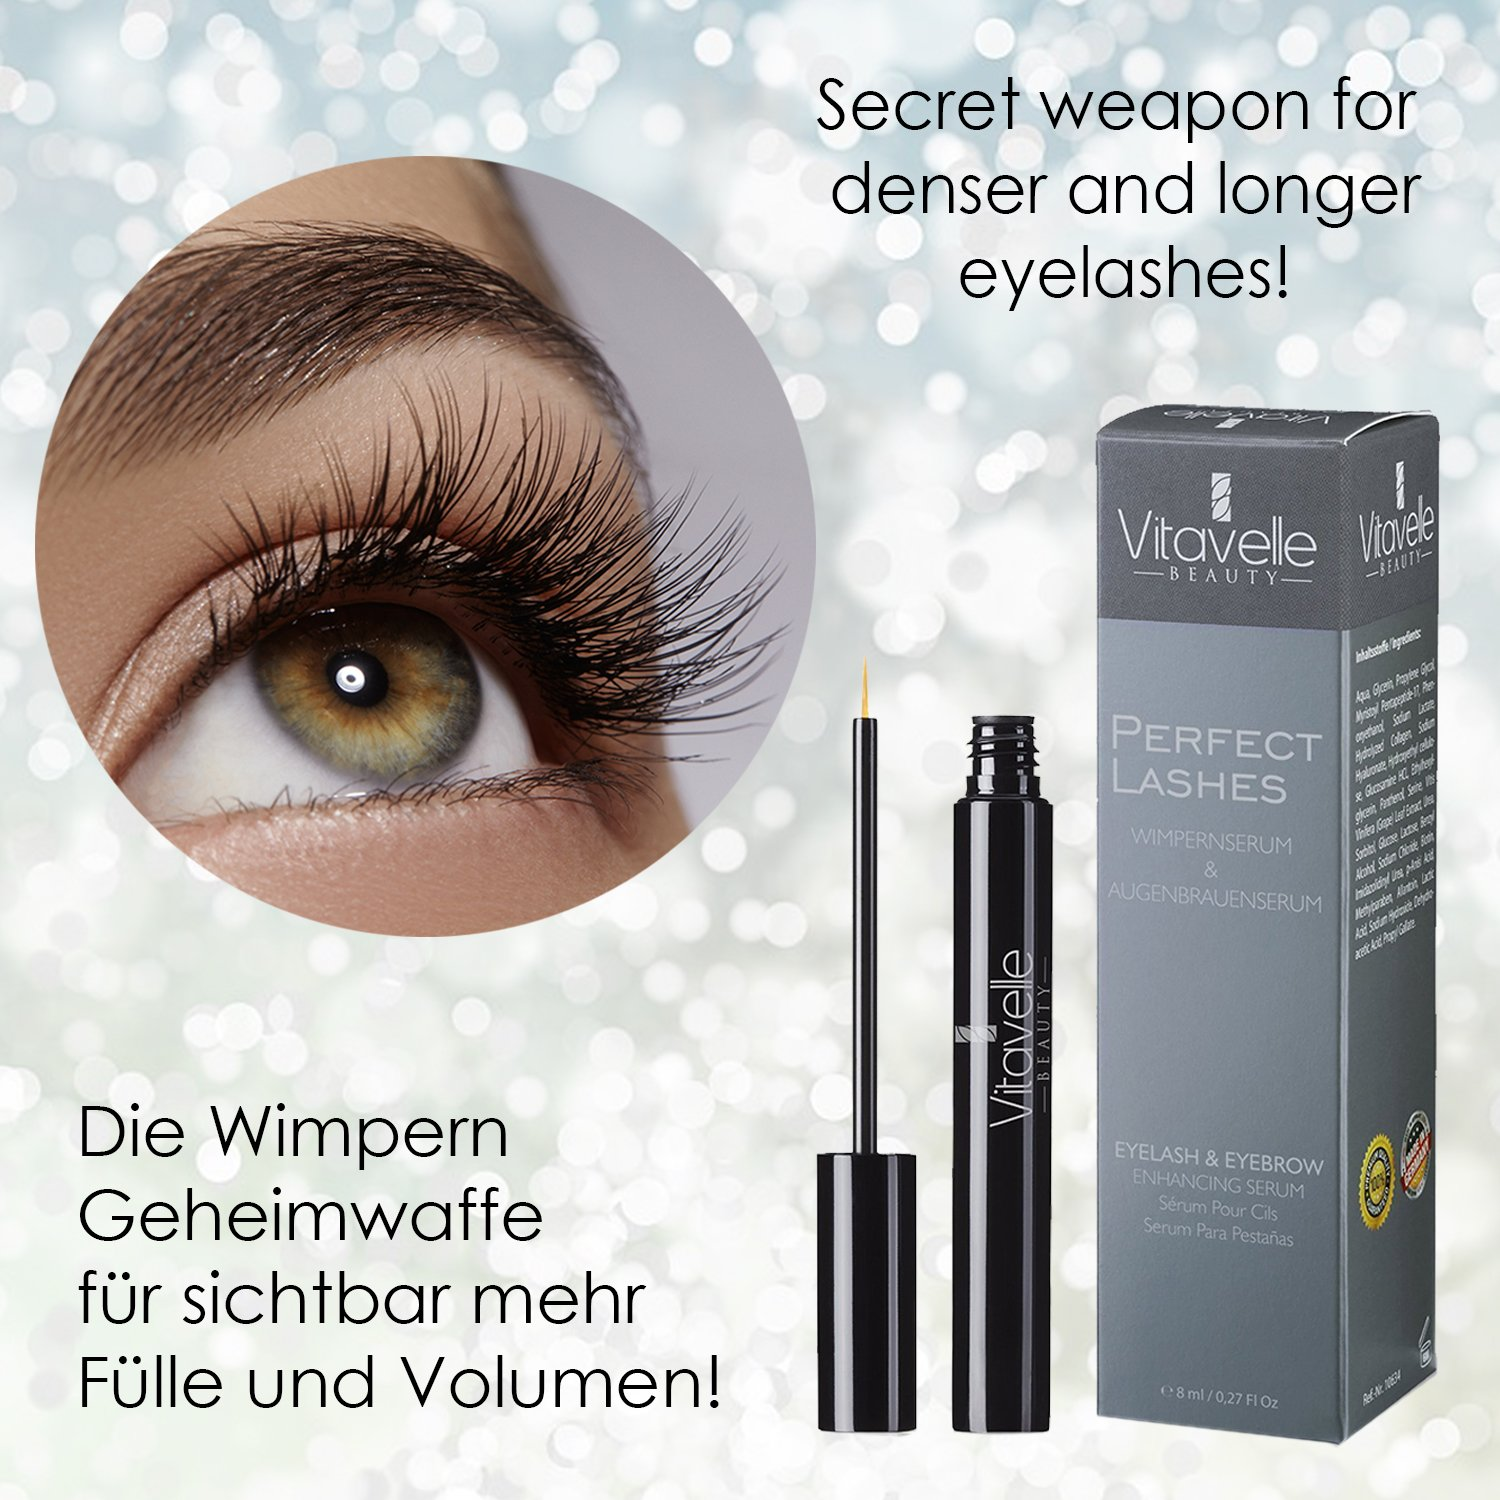 56d220cd3be Perfect Lashes Eyelash-Serum 8 ml. without Prostaglandin | Eyelash Growth  Serum | eyelashes + eyebrows care | Eyelash Enhancer | Eyelash-Booster |  Eyelash ...